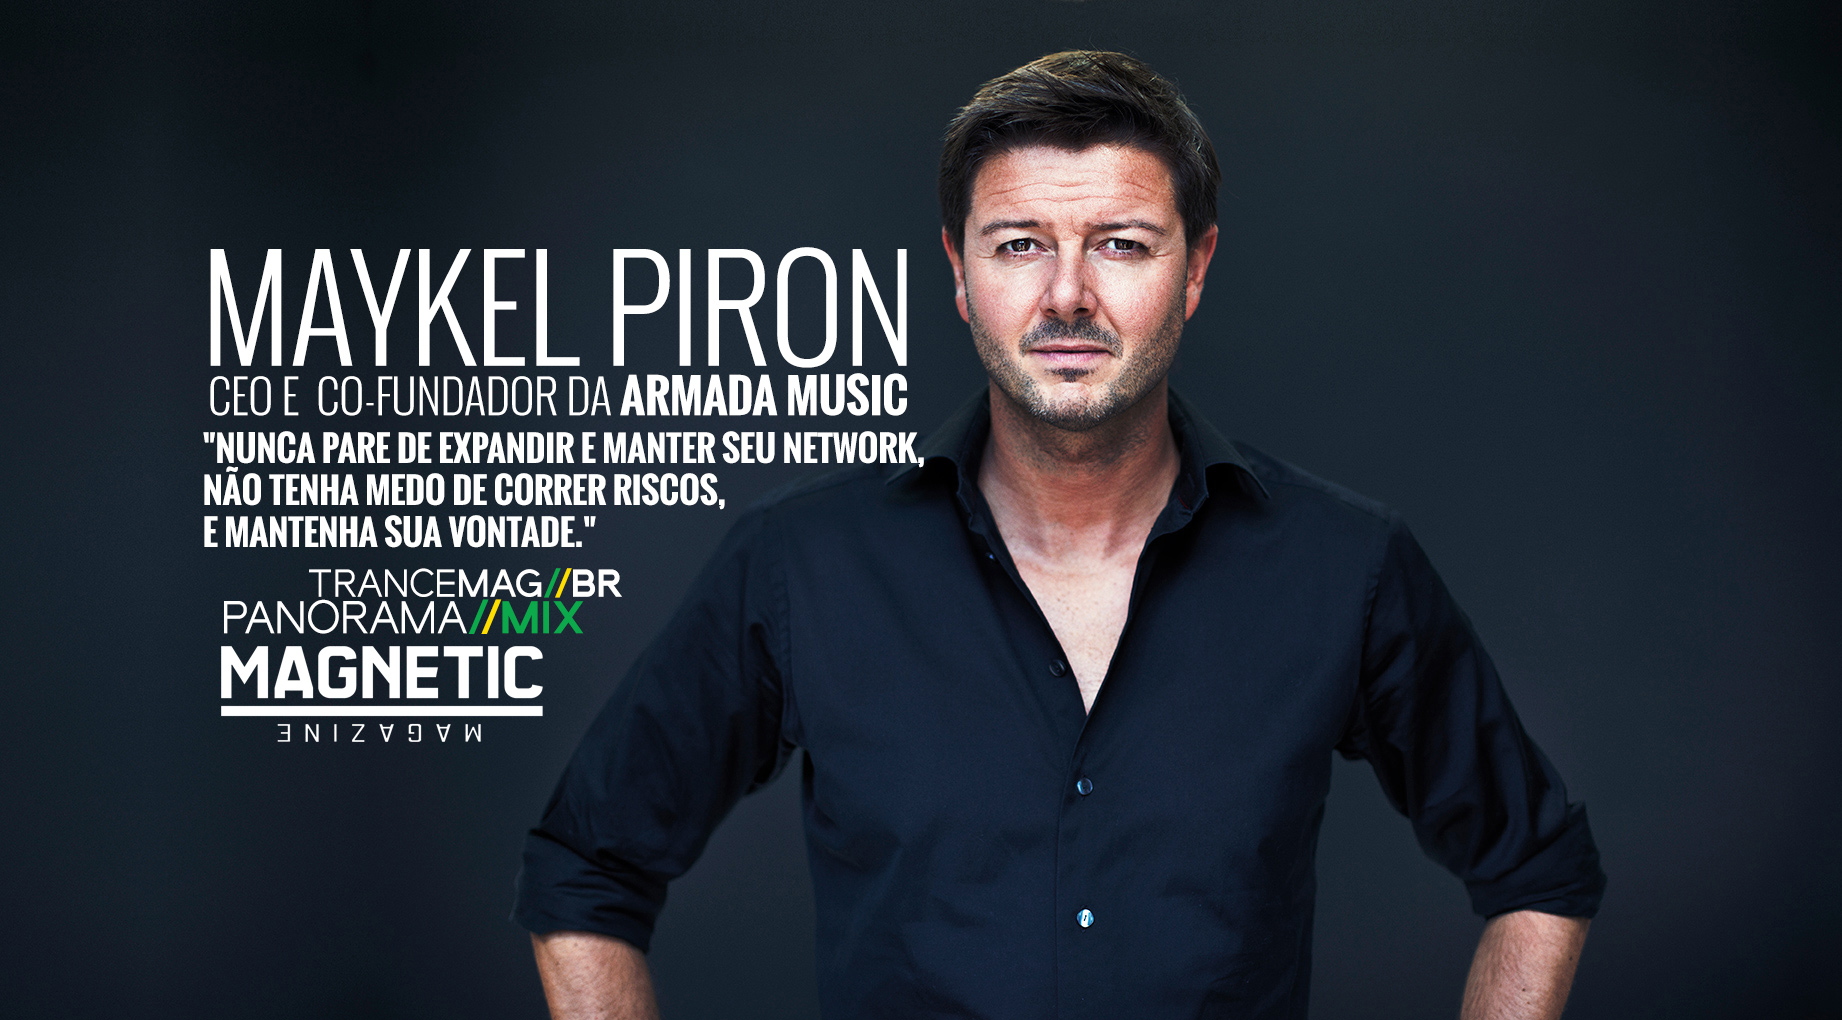 Panorama Mix: Maykel Piron – CEO e Co- Fundador da Armada Music